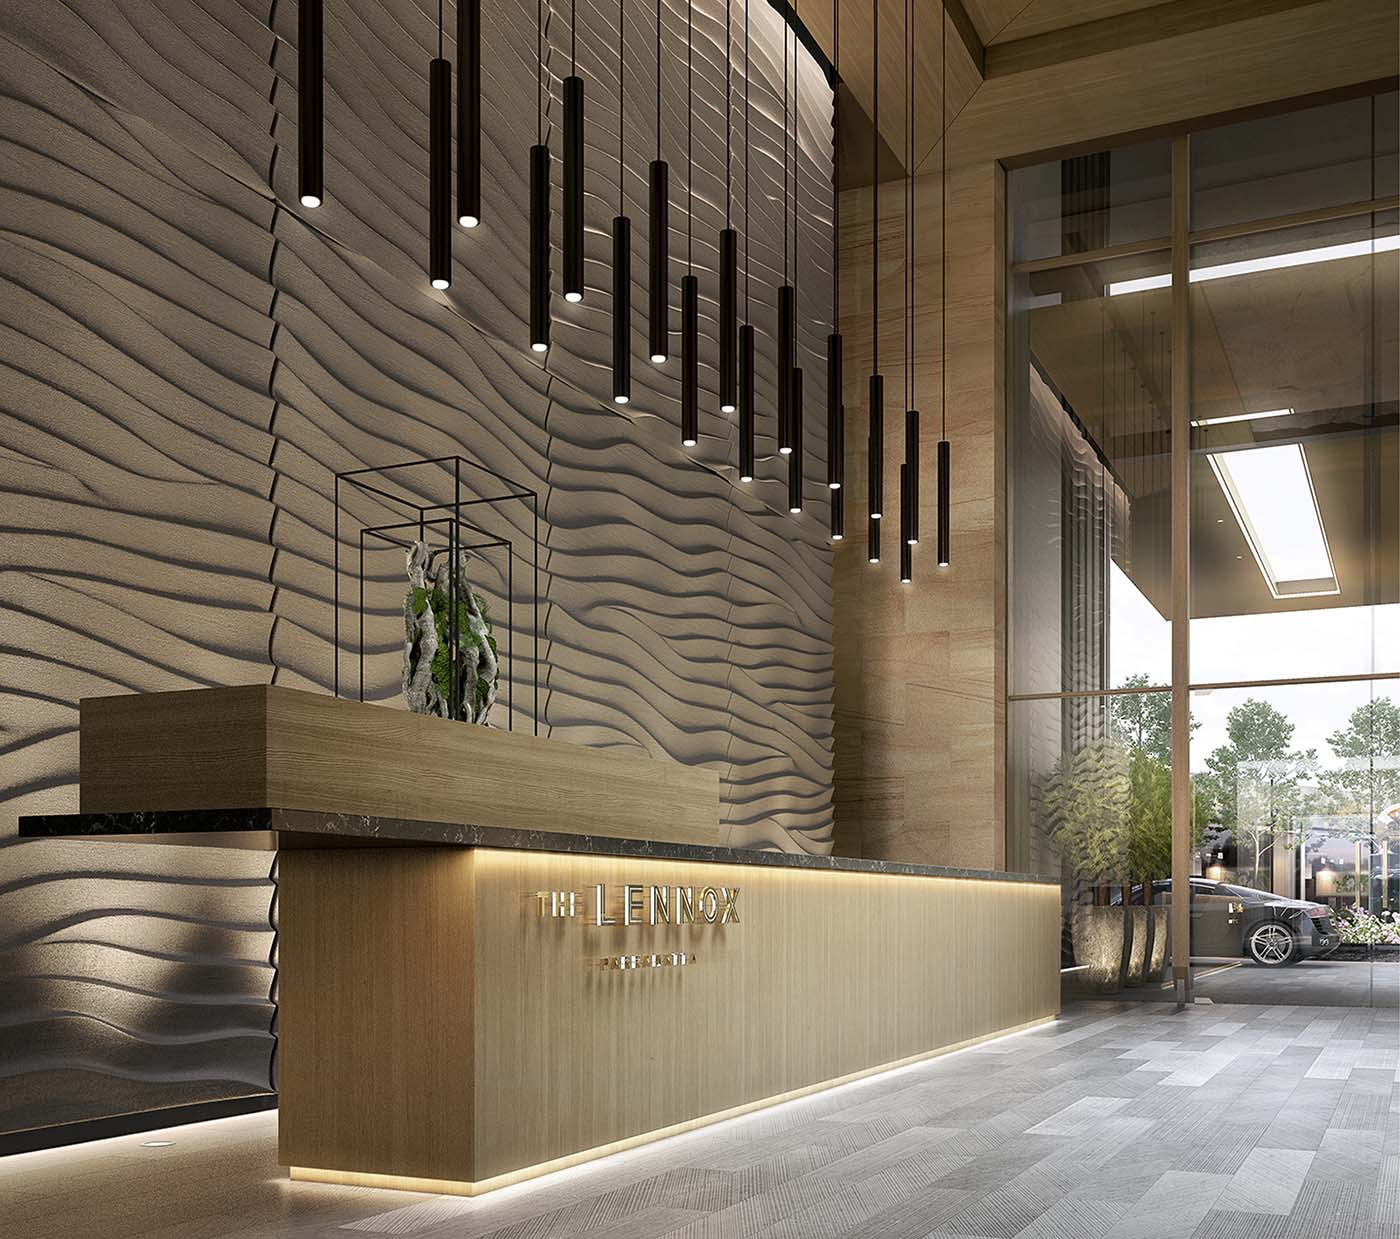 Lobby area of a skyscraper showing reception and lamps.